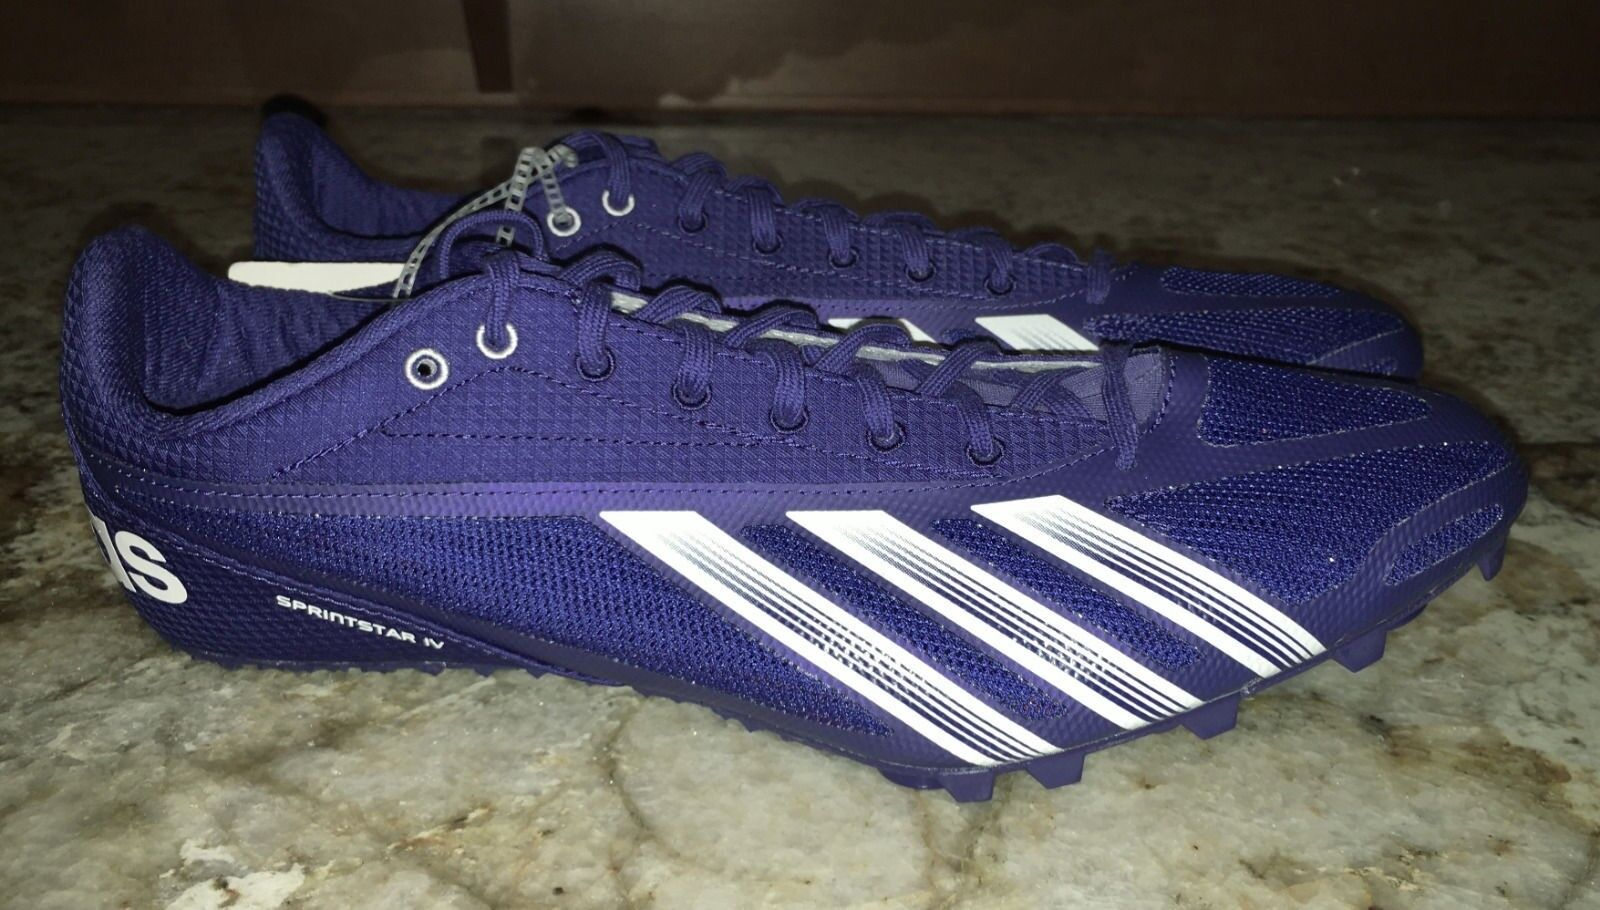 ADIDAS Sprint Star IV 4 Dark Blue White Track Field Spikes Shoes NEW Mens Sz 14 Great discount